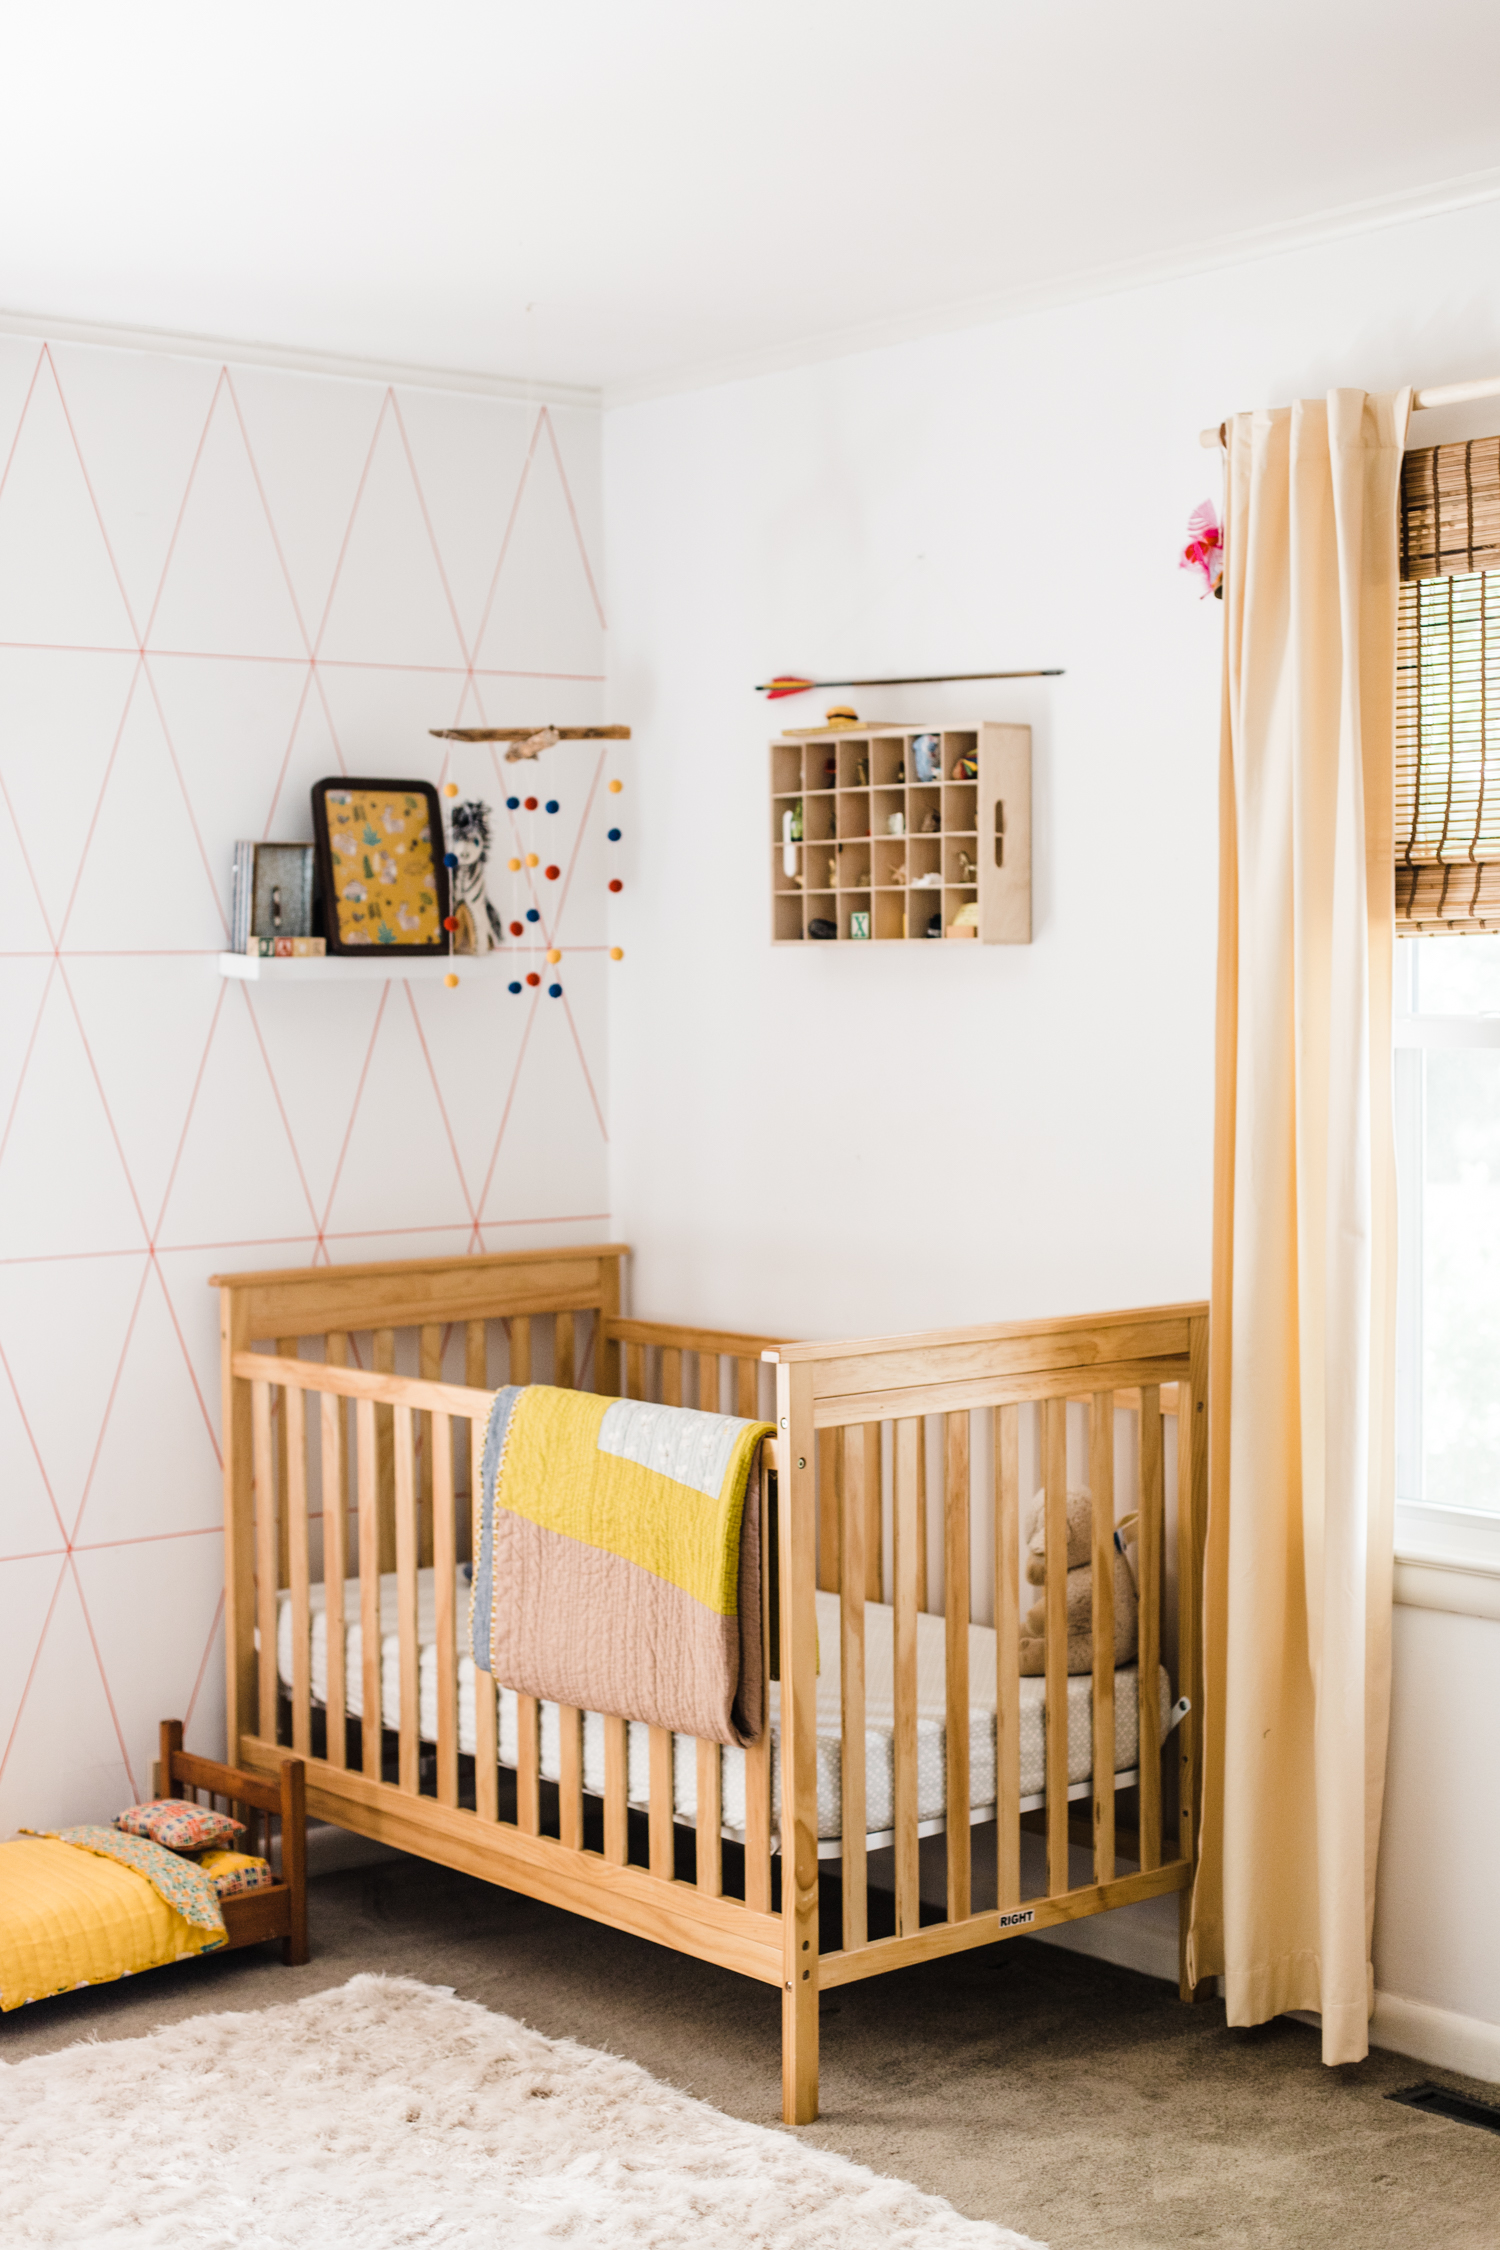 Jack's side of the room! We reused Caroline's crib since she is now a big girl. Jack won't sleep in here for a while, but it's nice to have it ready for when he's old enough to move in. For anyone with a shared kid room–at what age did you move your baby into the shared room?